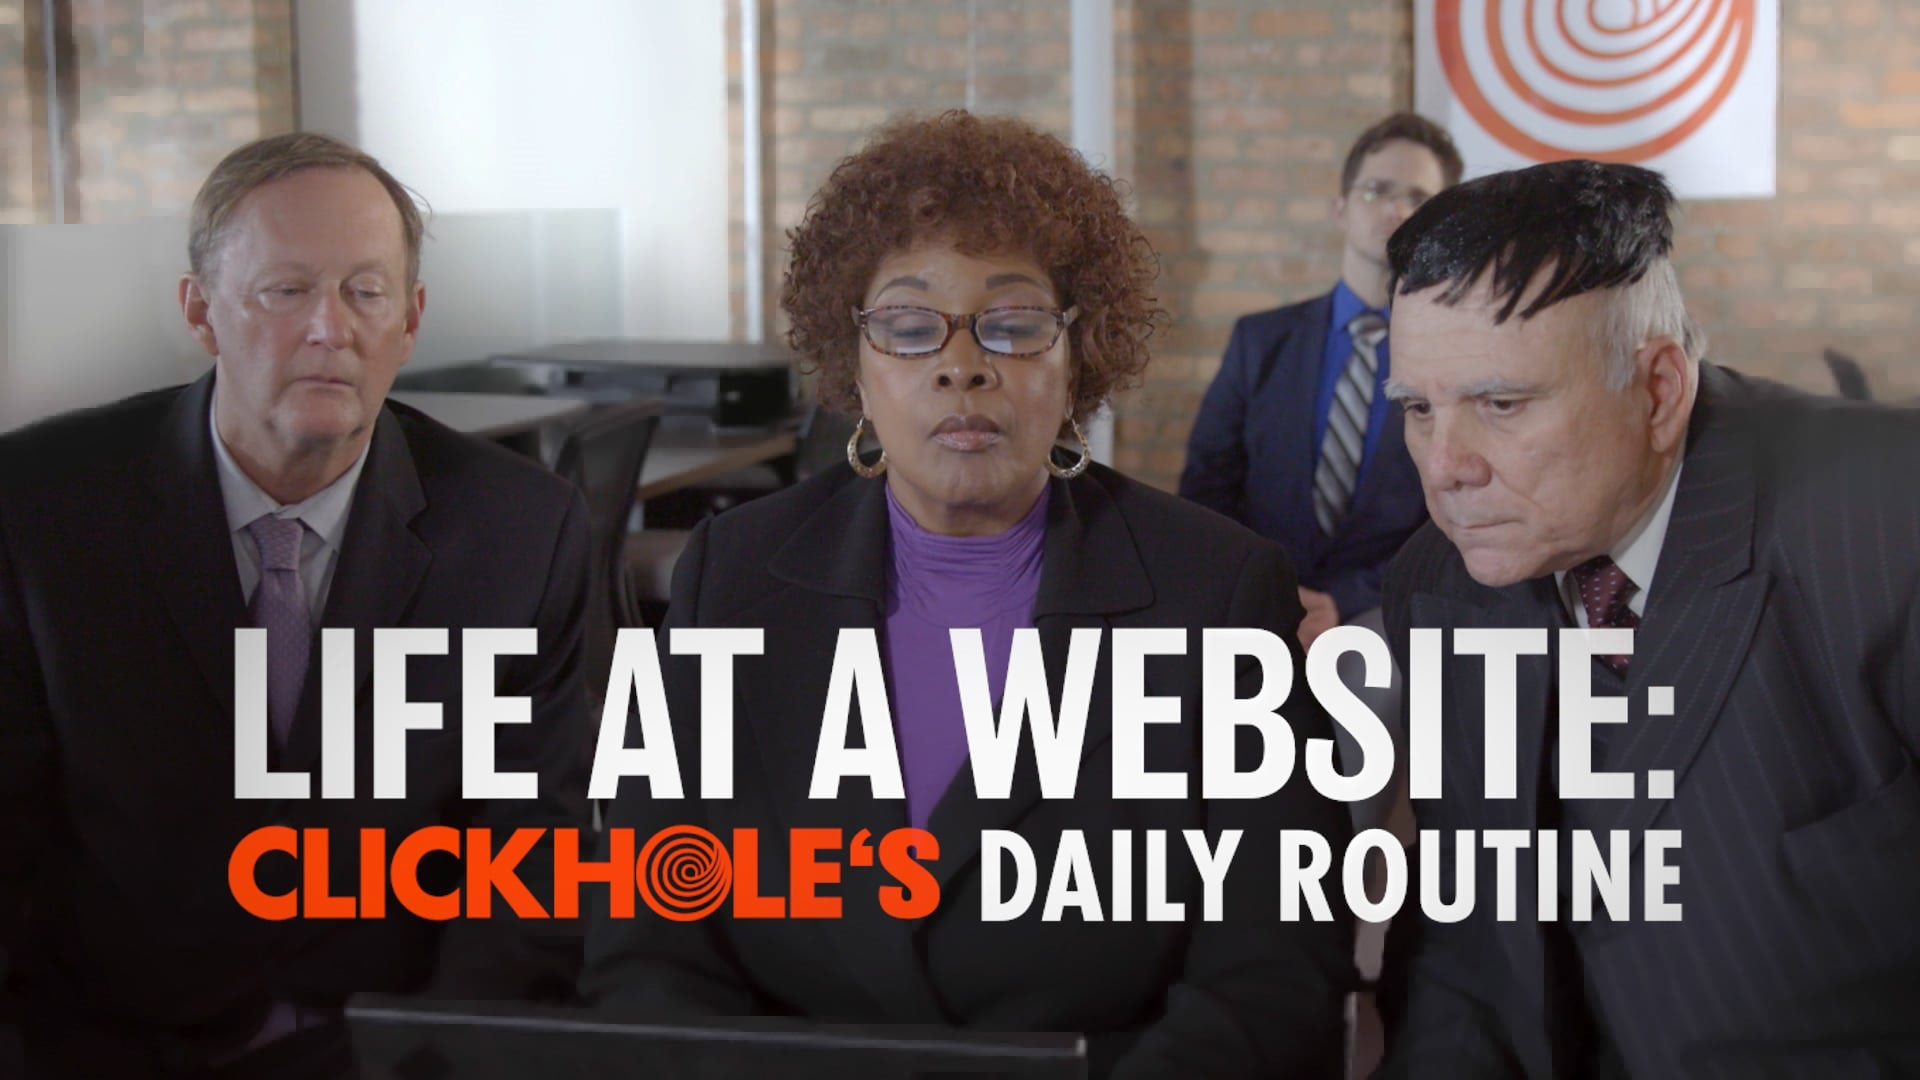 Behind The Scenes At ClickHole